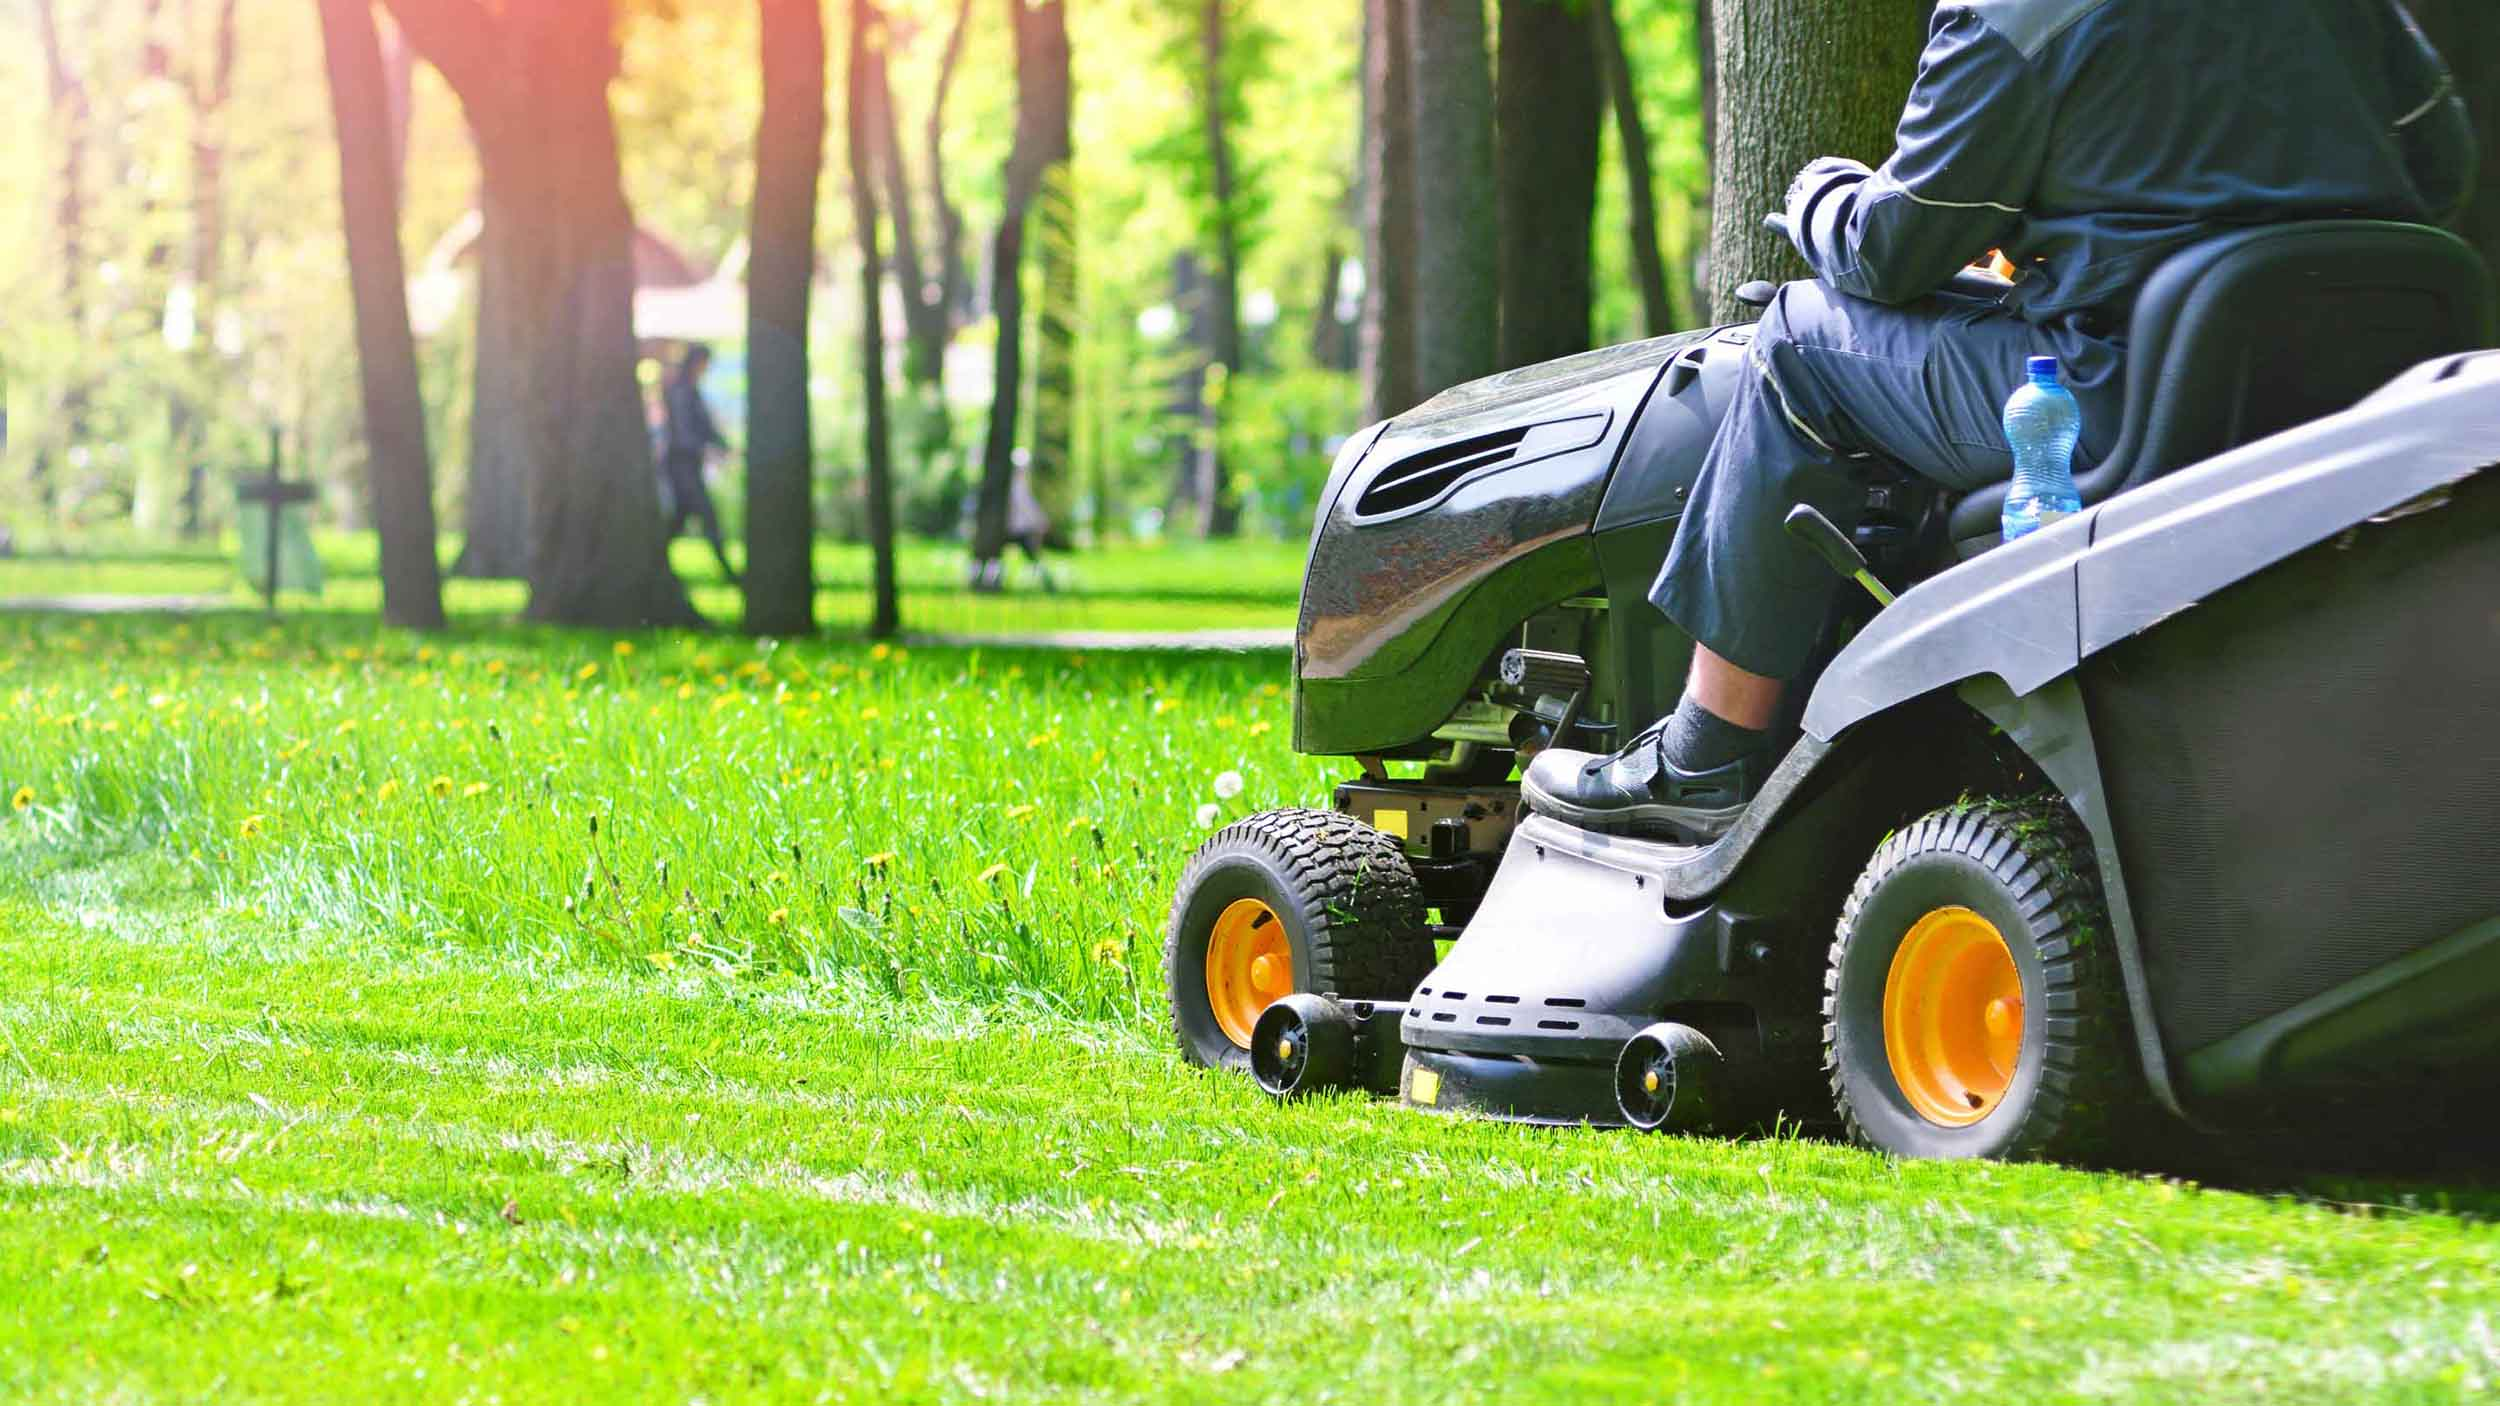 Person on a riding mower trimming green grass